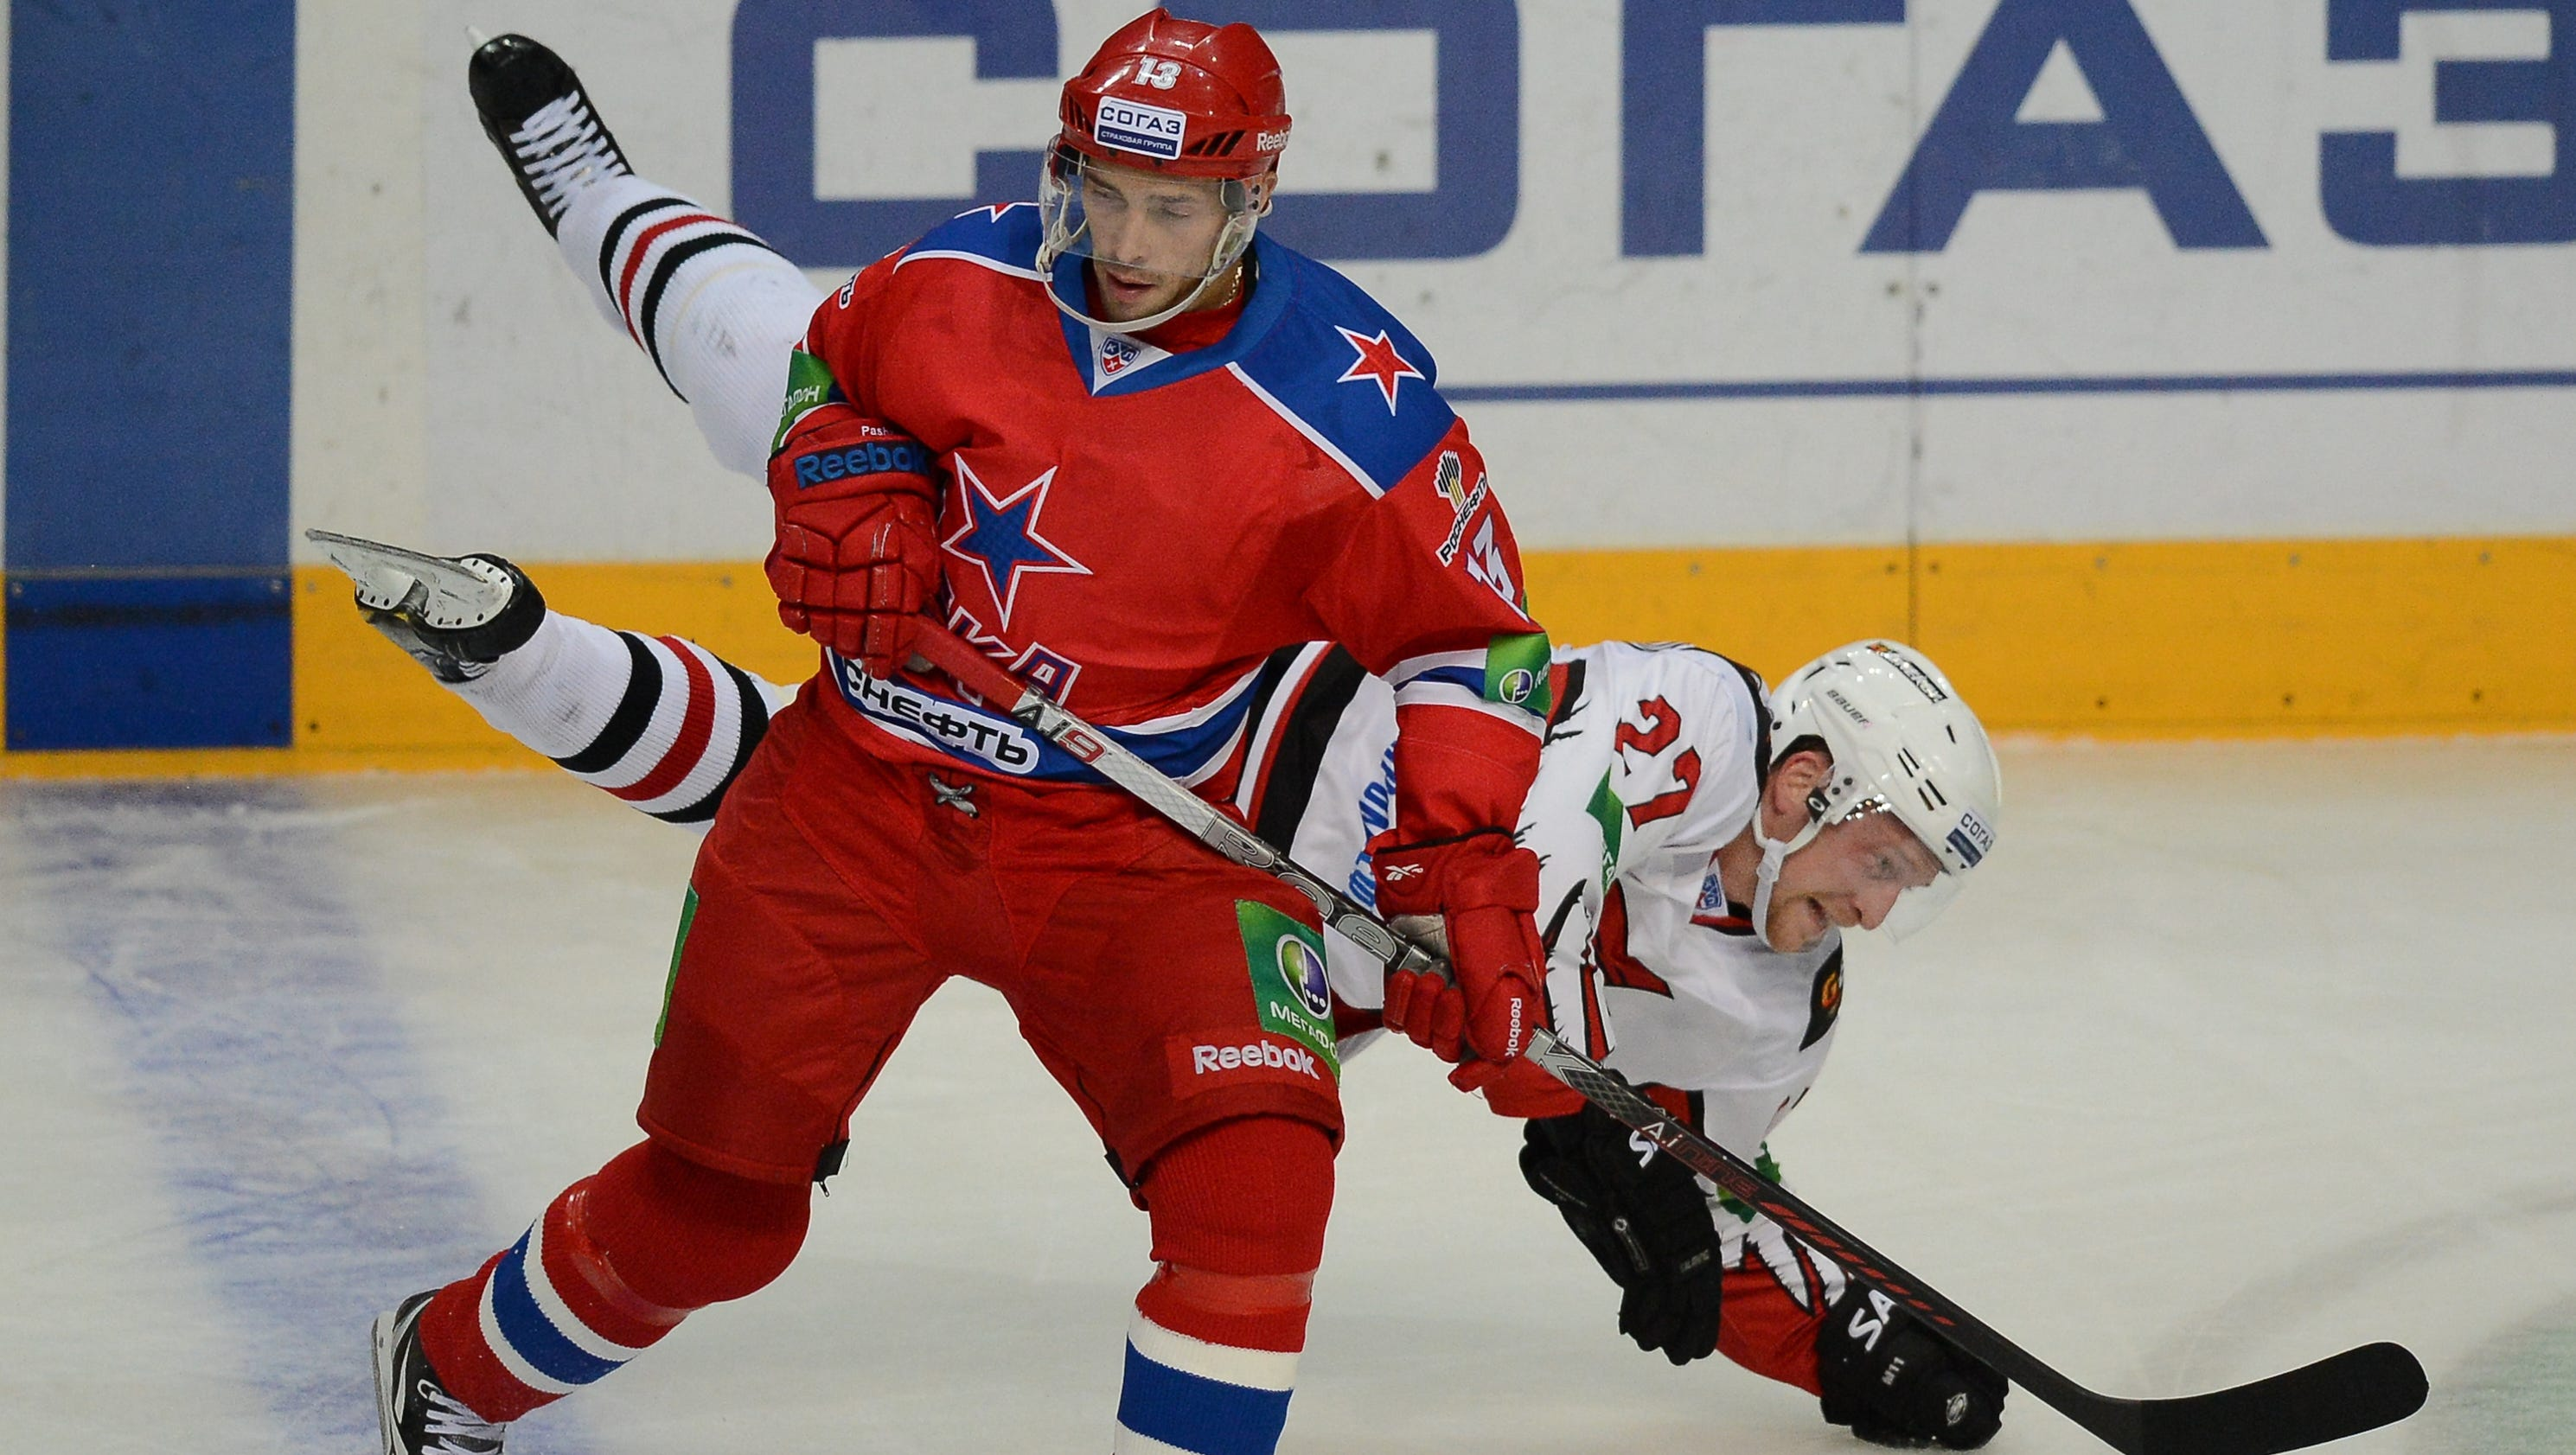 Pavel datsyuk signs 2 year deal with ska st petersburg voltagebd Image collections